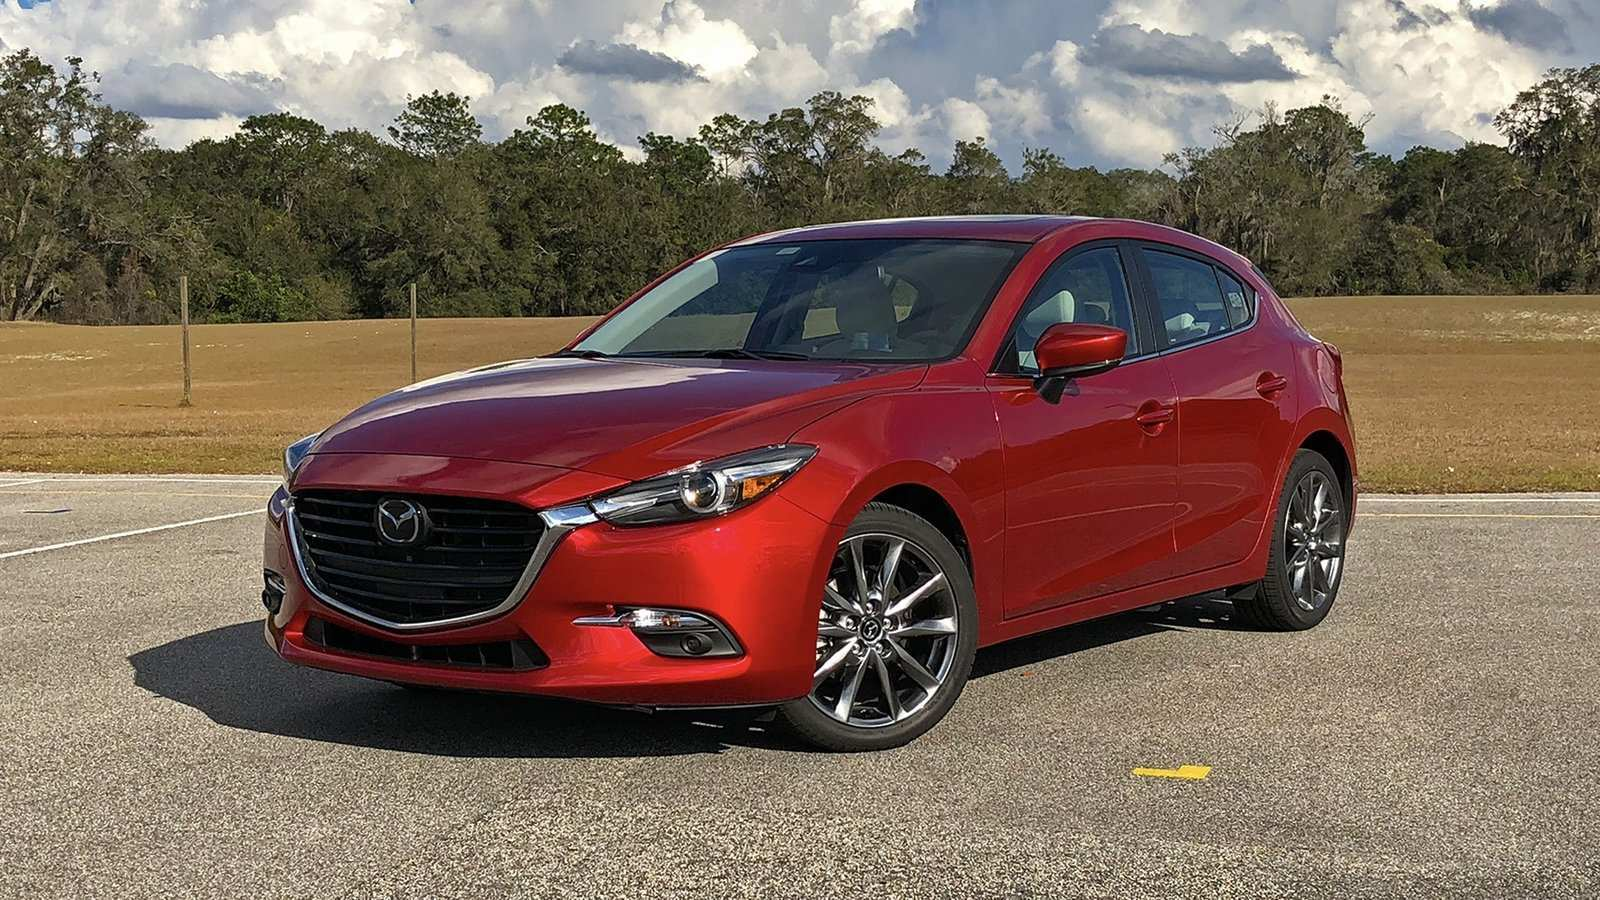 18 New Mazda 3 Grand Touring Lx 2020 Reviews with Mazda 3 Grand Touring Lx 2020